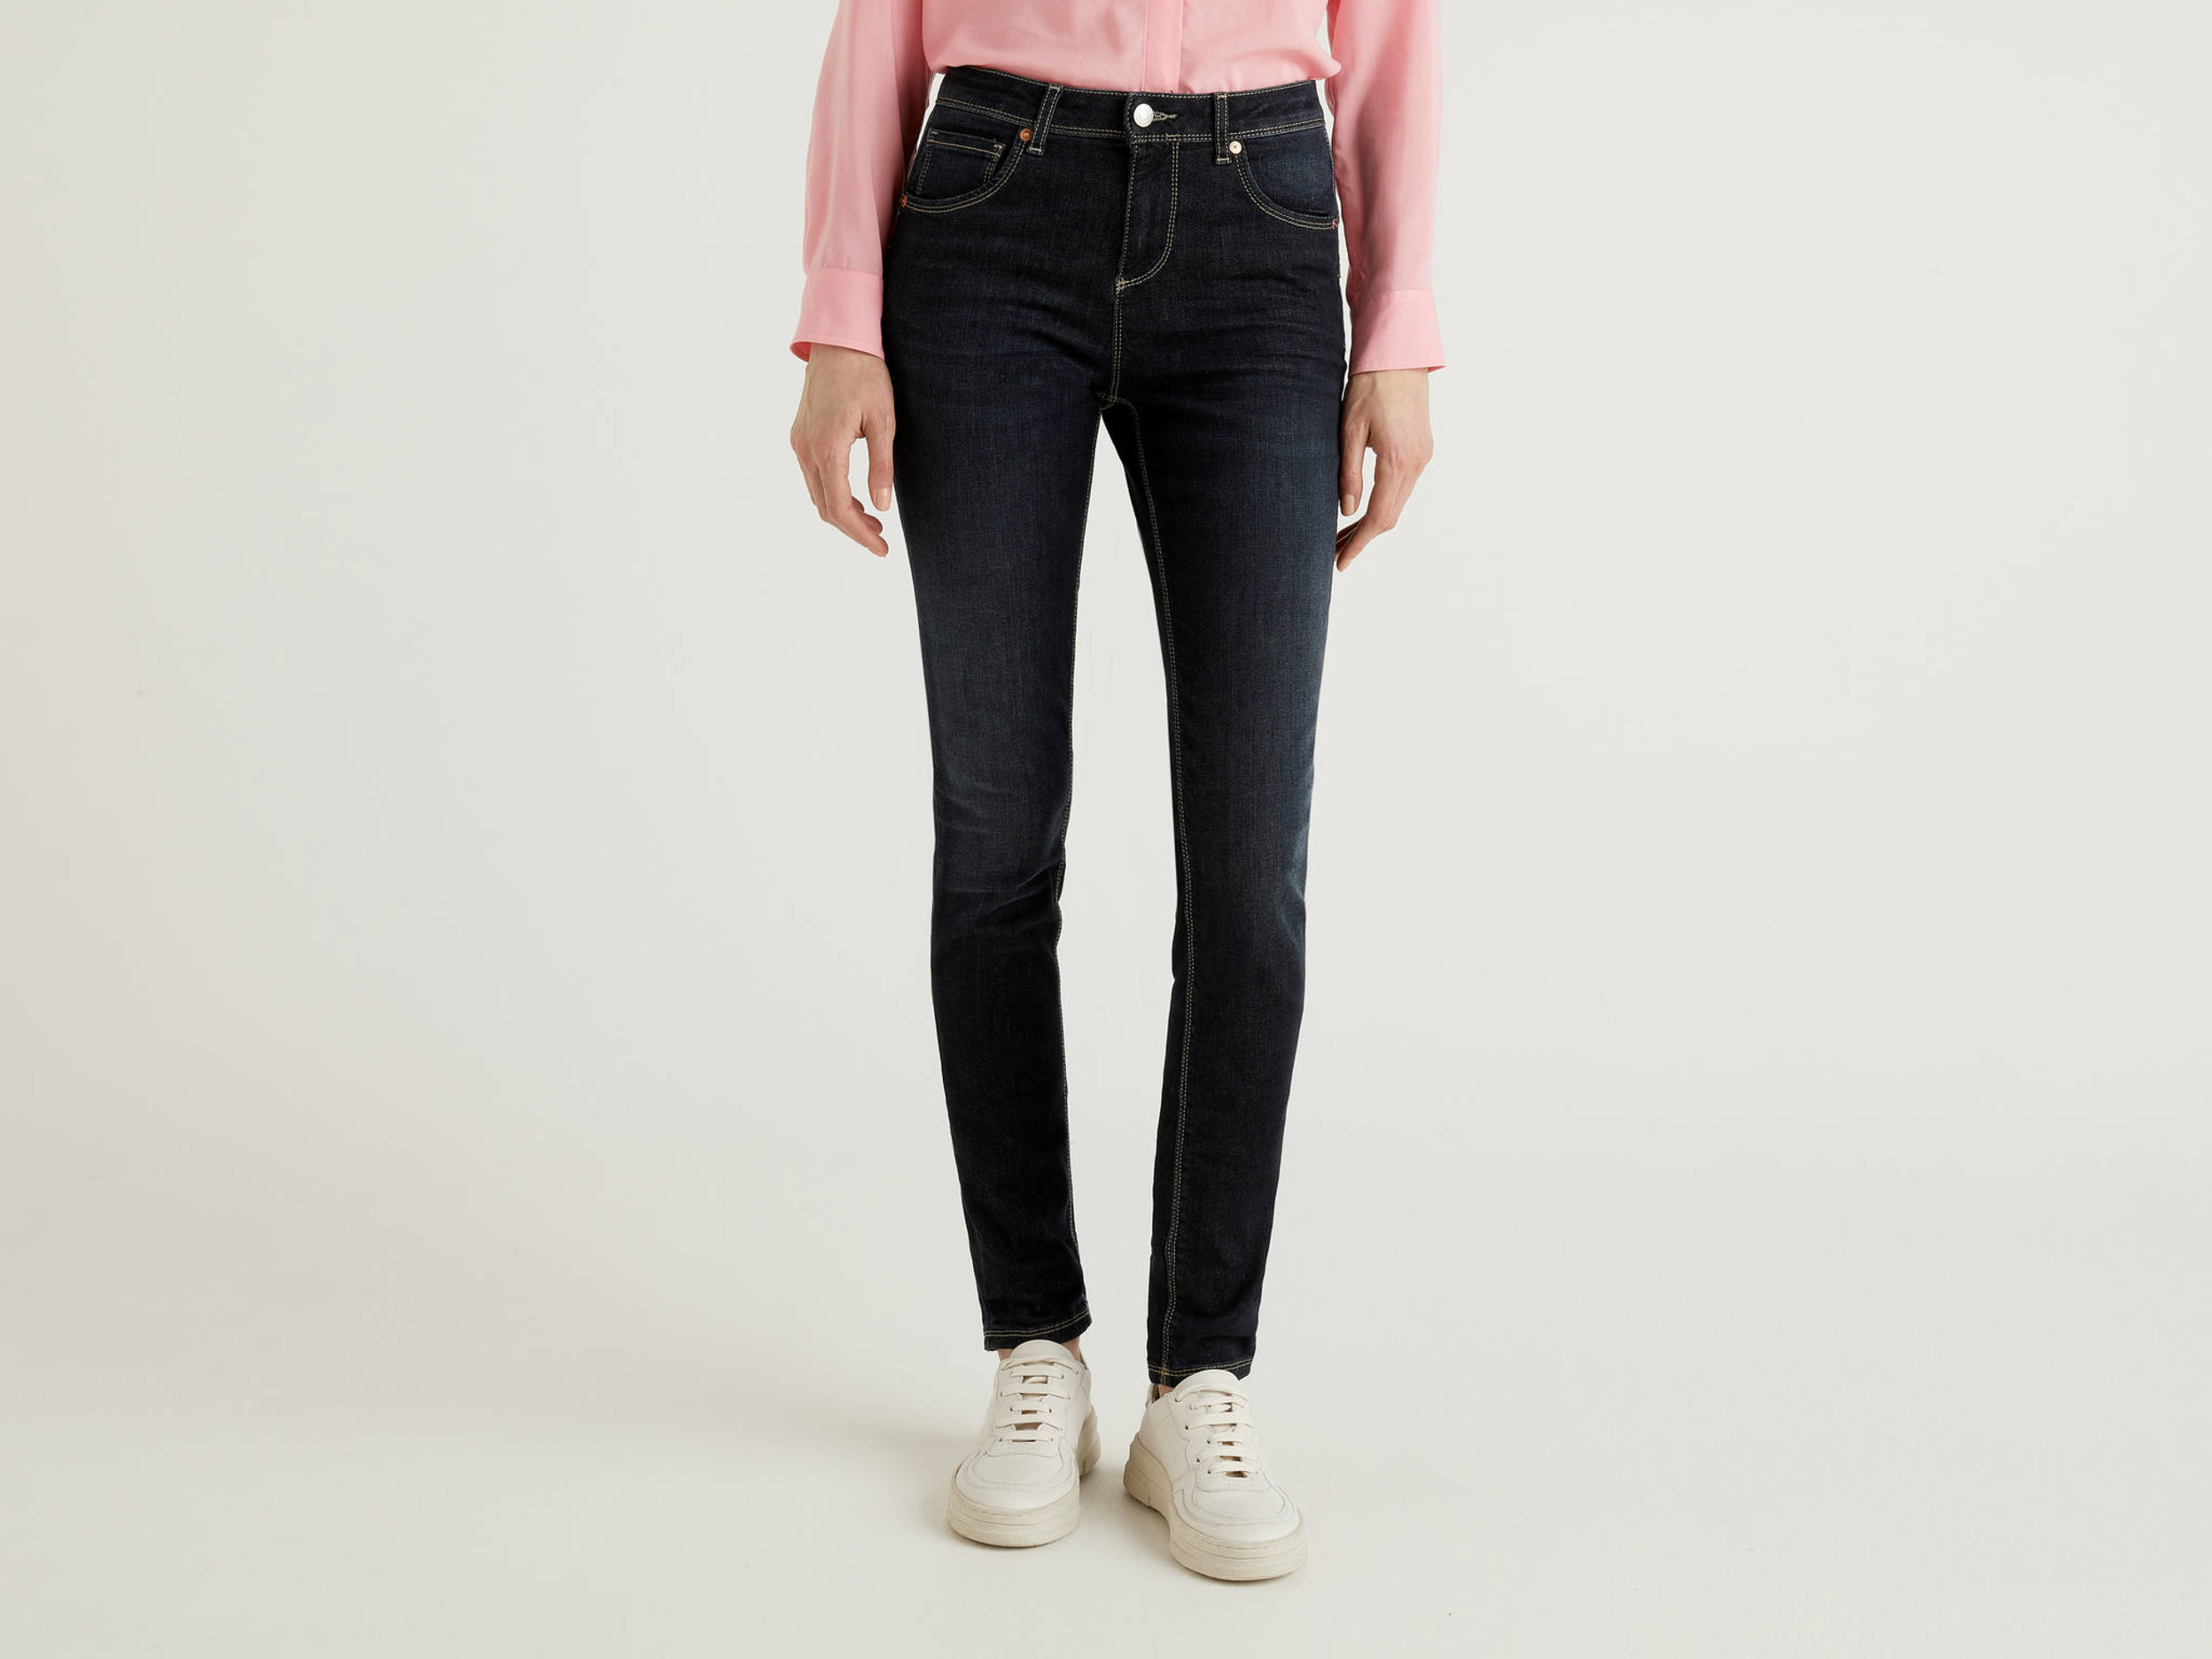 Benetton, Jeans Push Up Skinny Fit, Blu Scuro, Donna